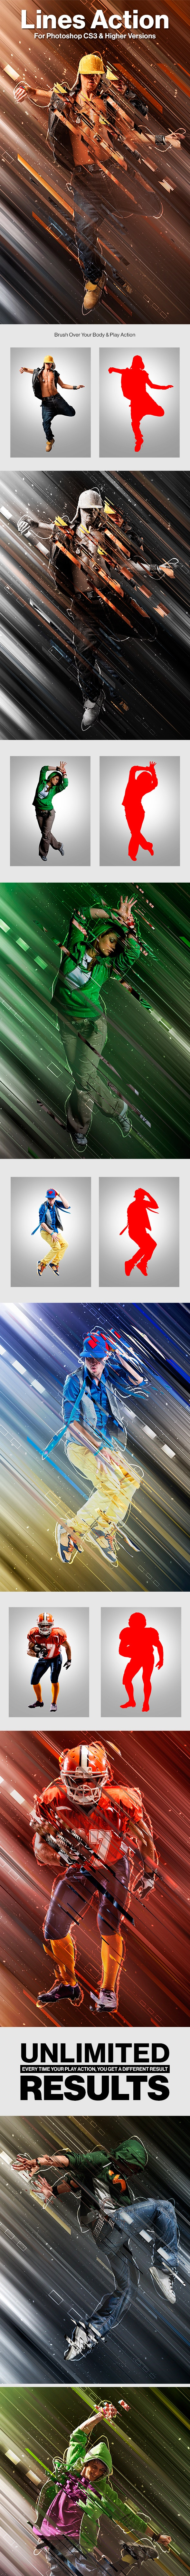 Lines Photoshop Action - Photo Effects Actions